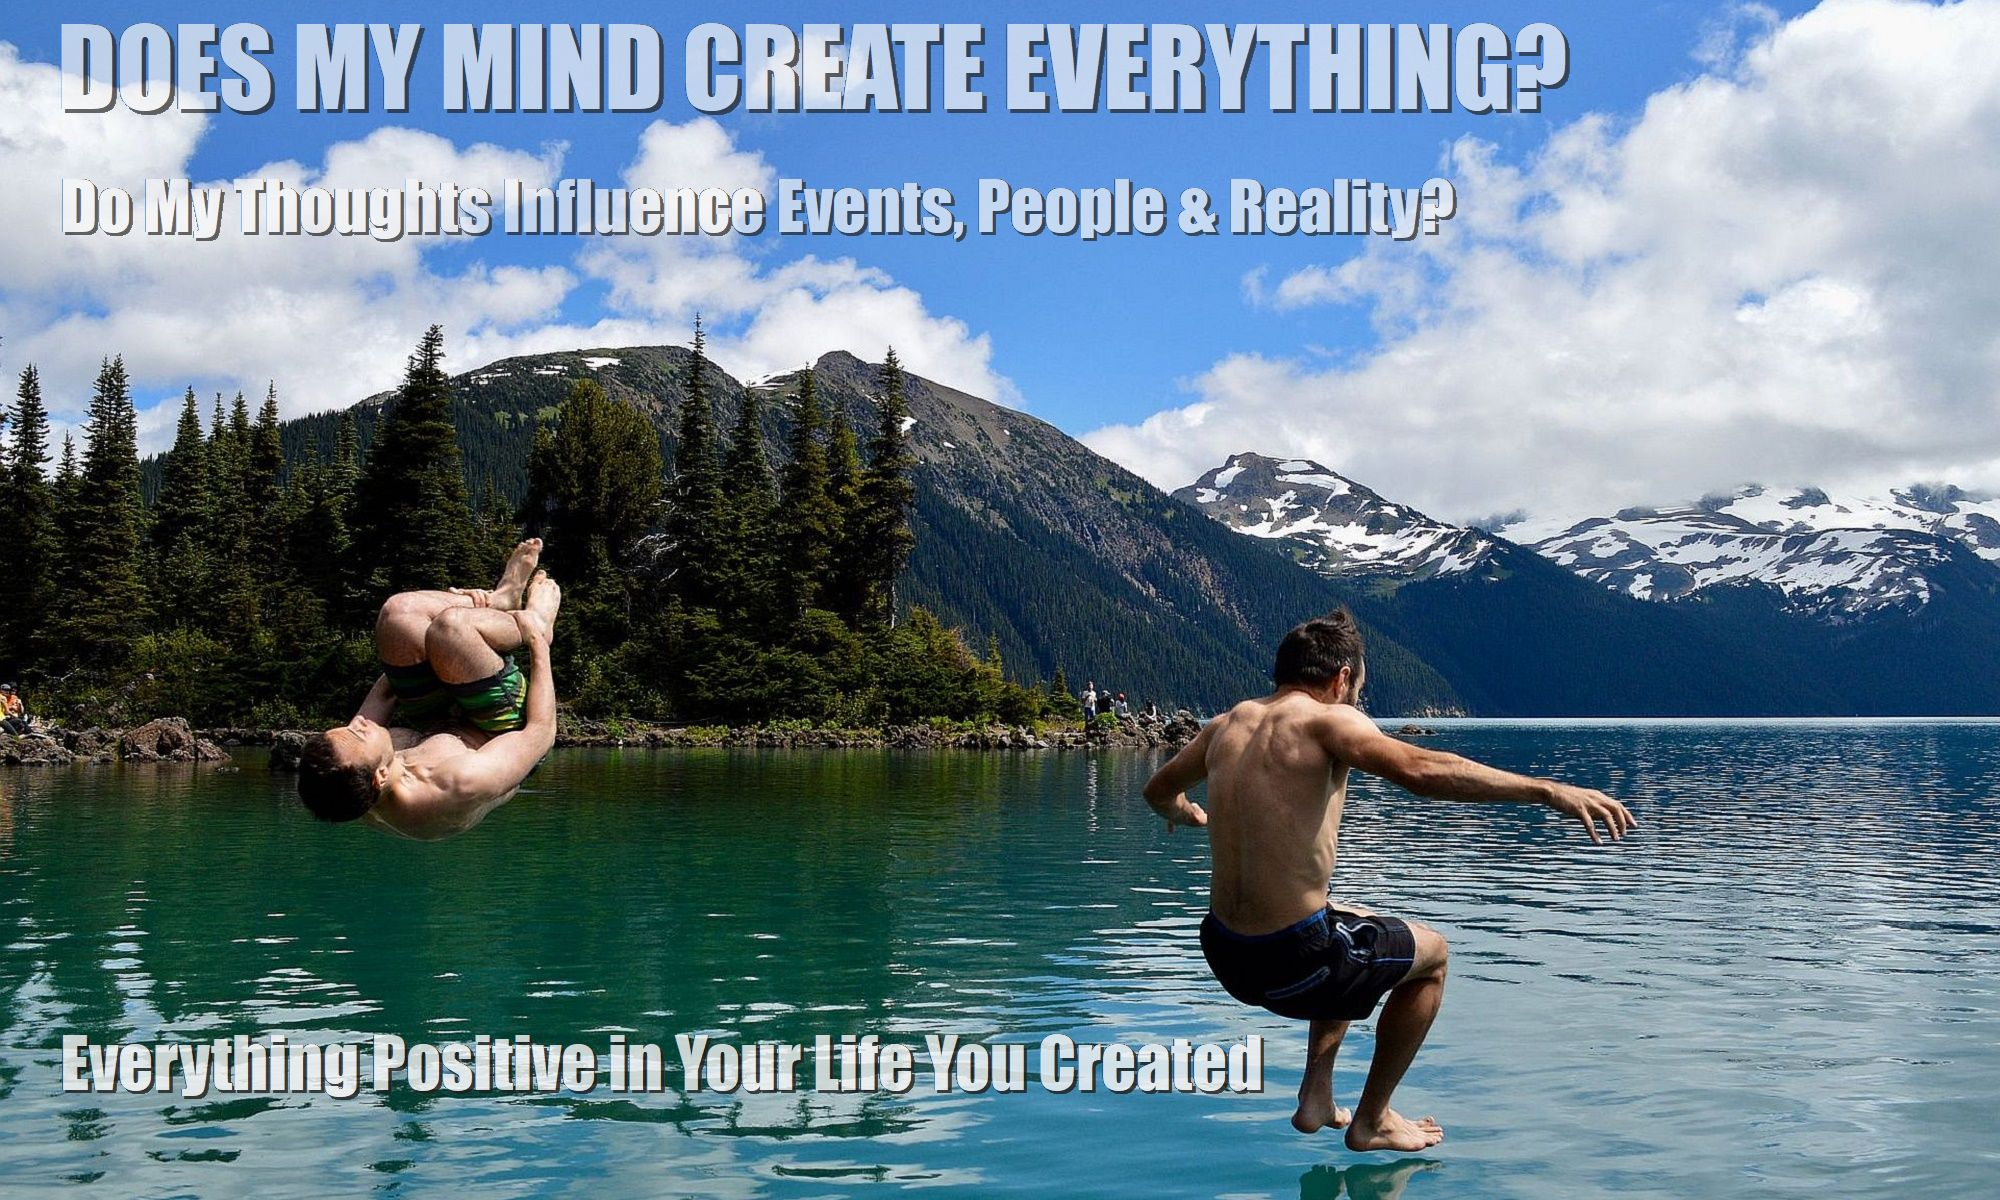 How-do-Do-My-Thoughts-Mind-Create-Everything-2000